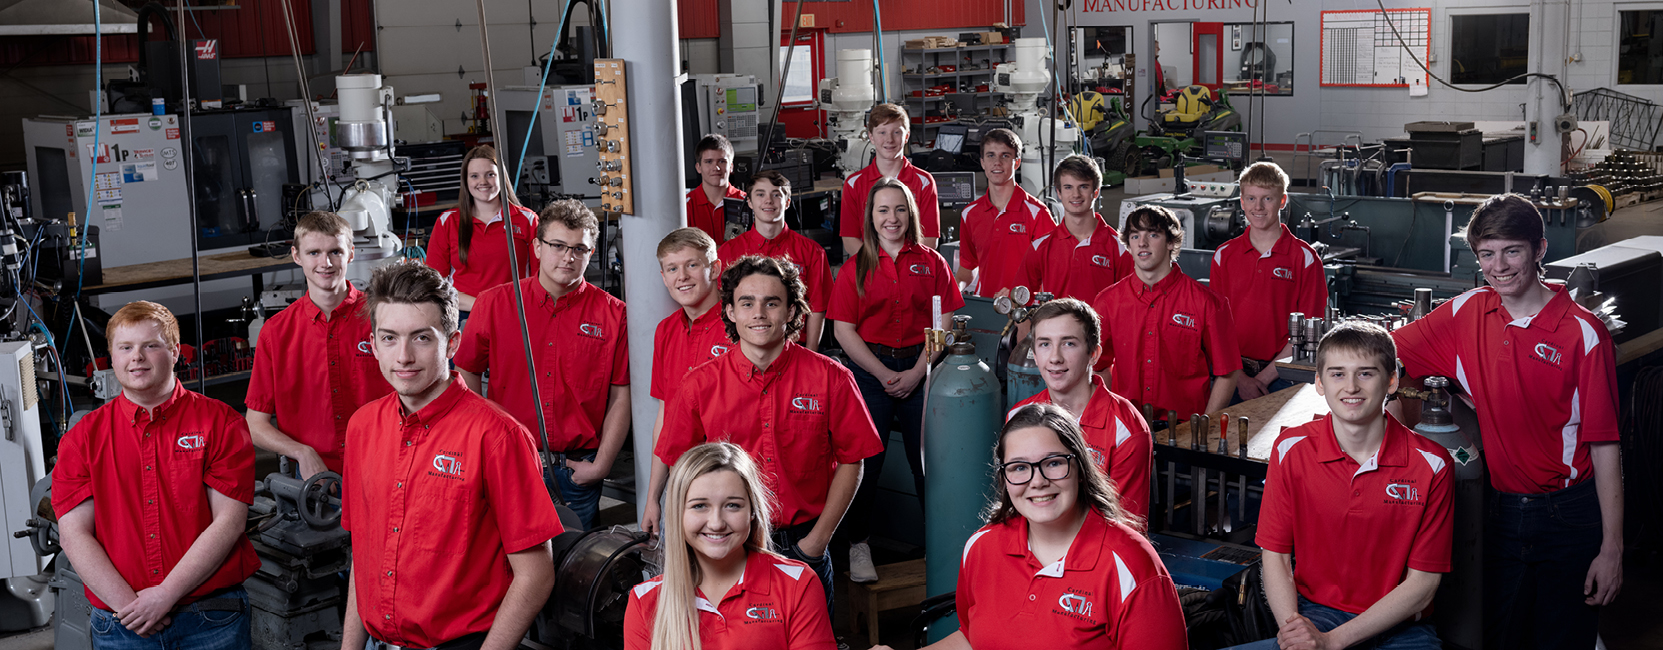 At a Small Midwest High School, Shop Class is Reborn